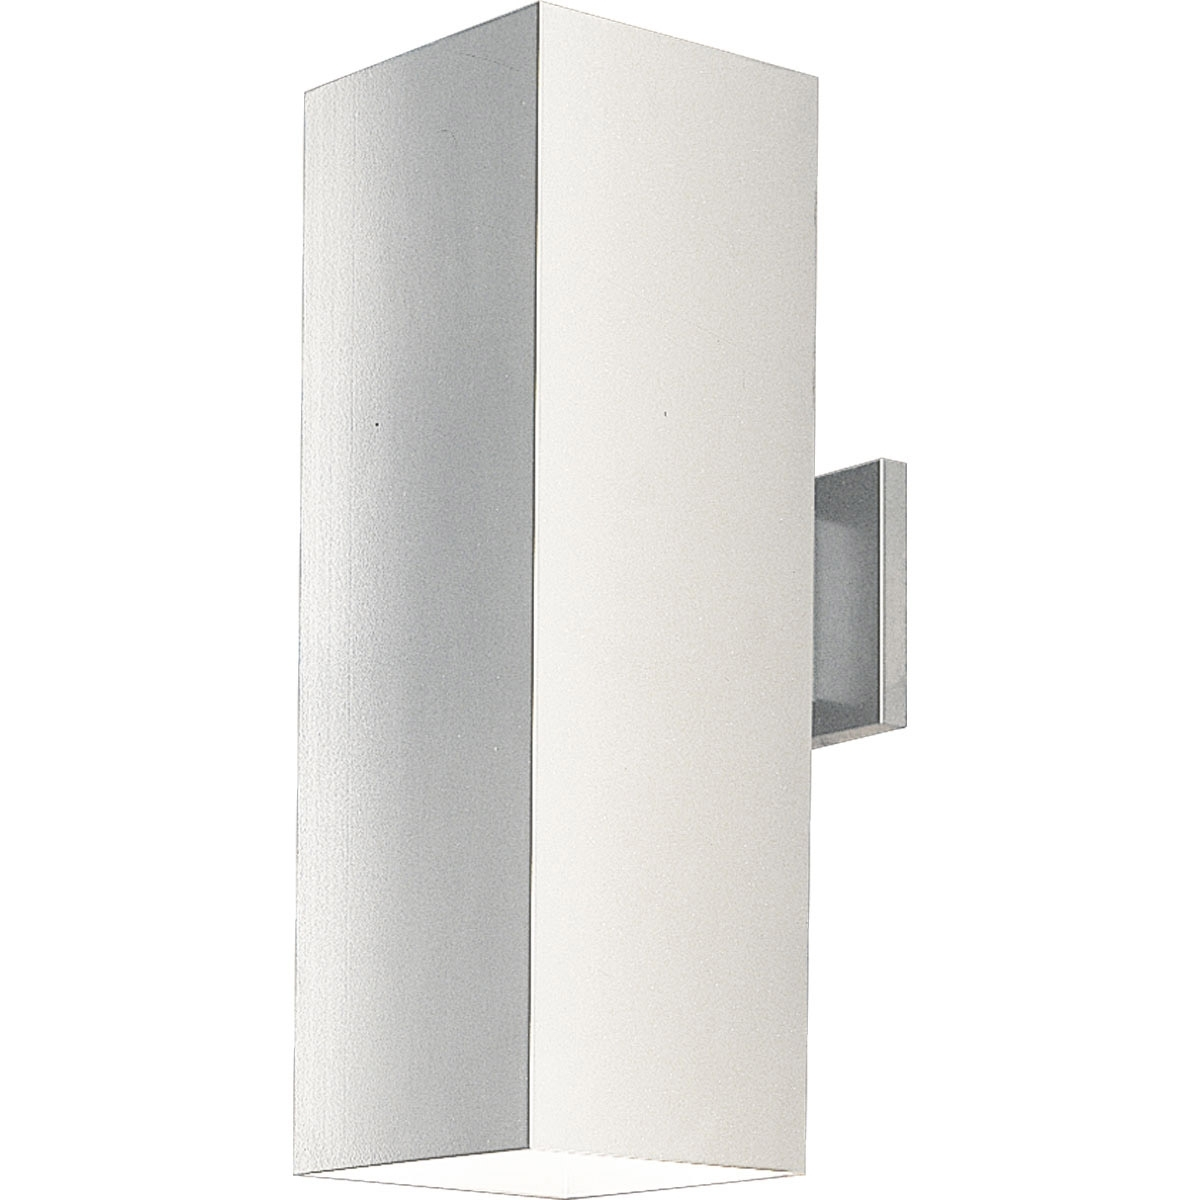 Preferred Lighting P5644 30 Square Outdoor Wall Mount Fixture With Square Outdoor Wall Lights (View 11 of 20)